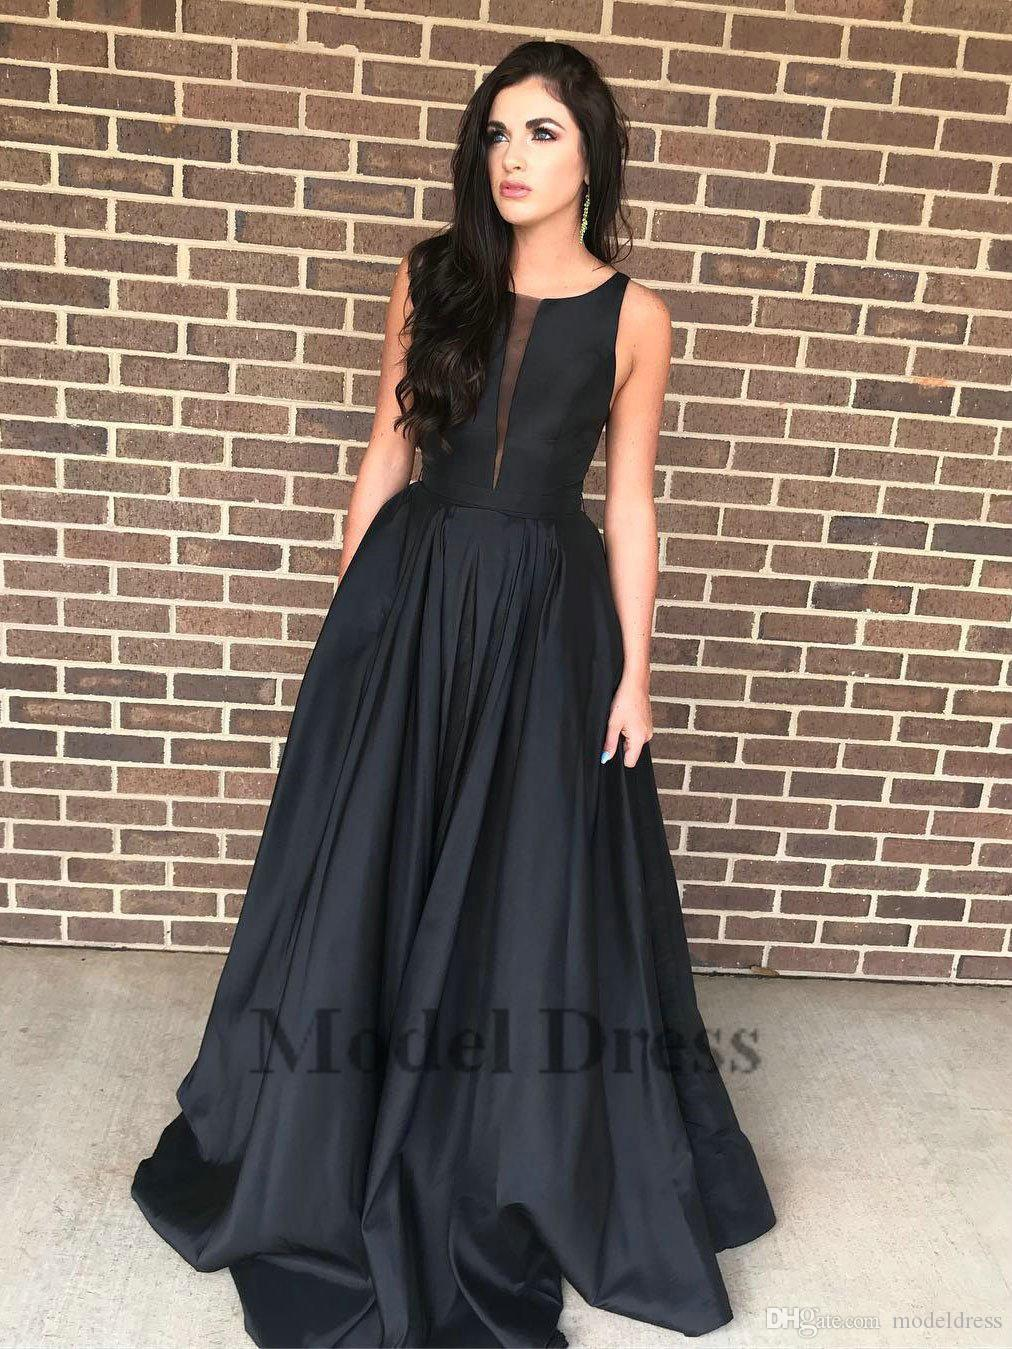 Satin Black Evening Dresses Elegant A Line Sleeveless Fashion Women Celebrity Evening Gowns Red Carpet Free Shipping High Quality Hot Sale